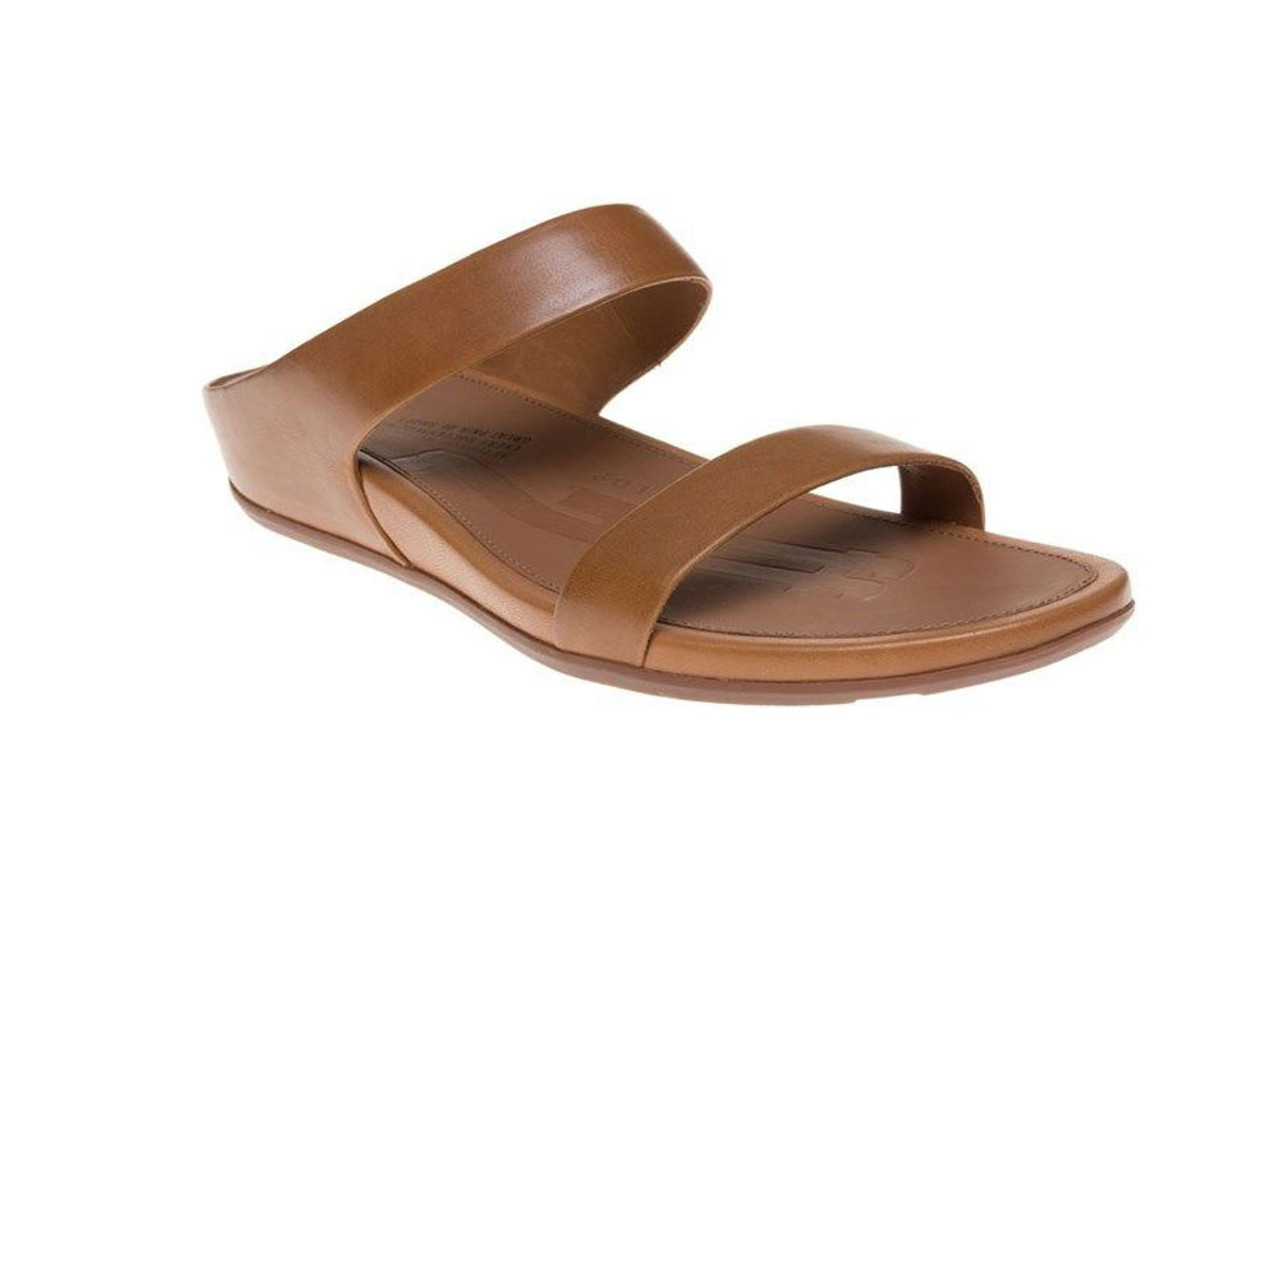 45c75f9da787f Fitflop Women s Banda Slide Tan - Shop now   Shoolu.com